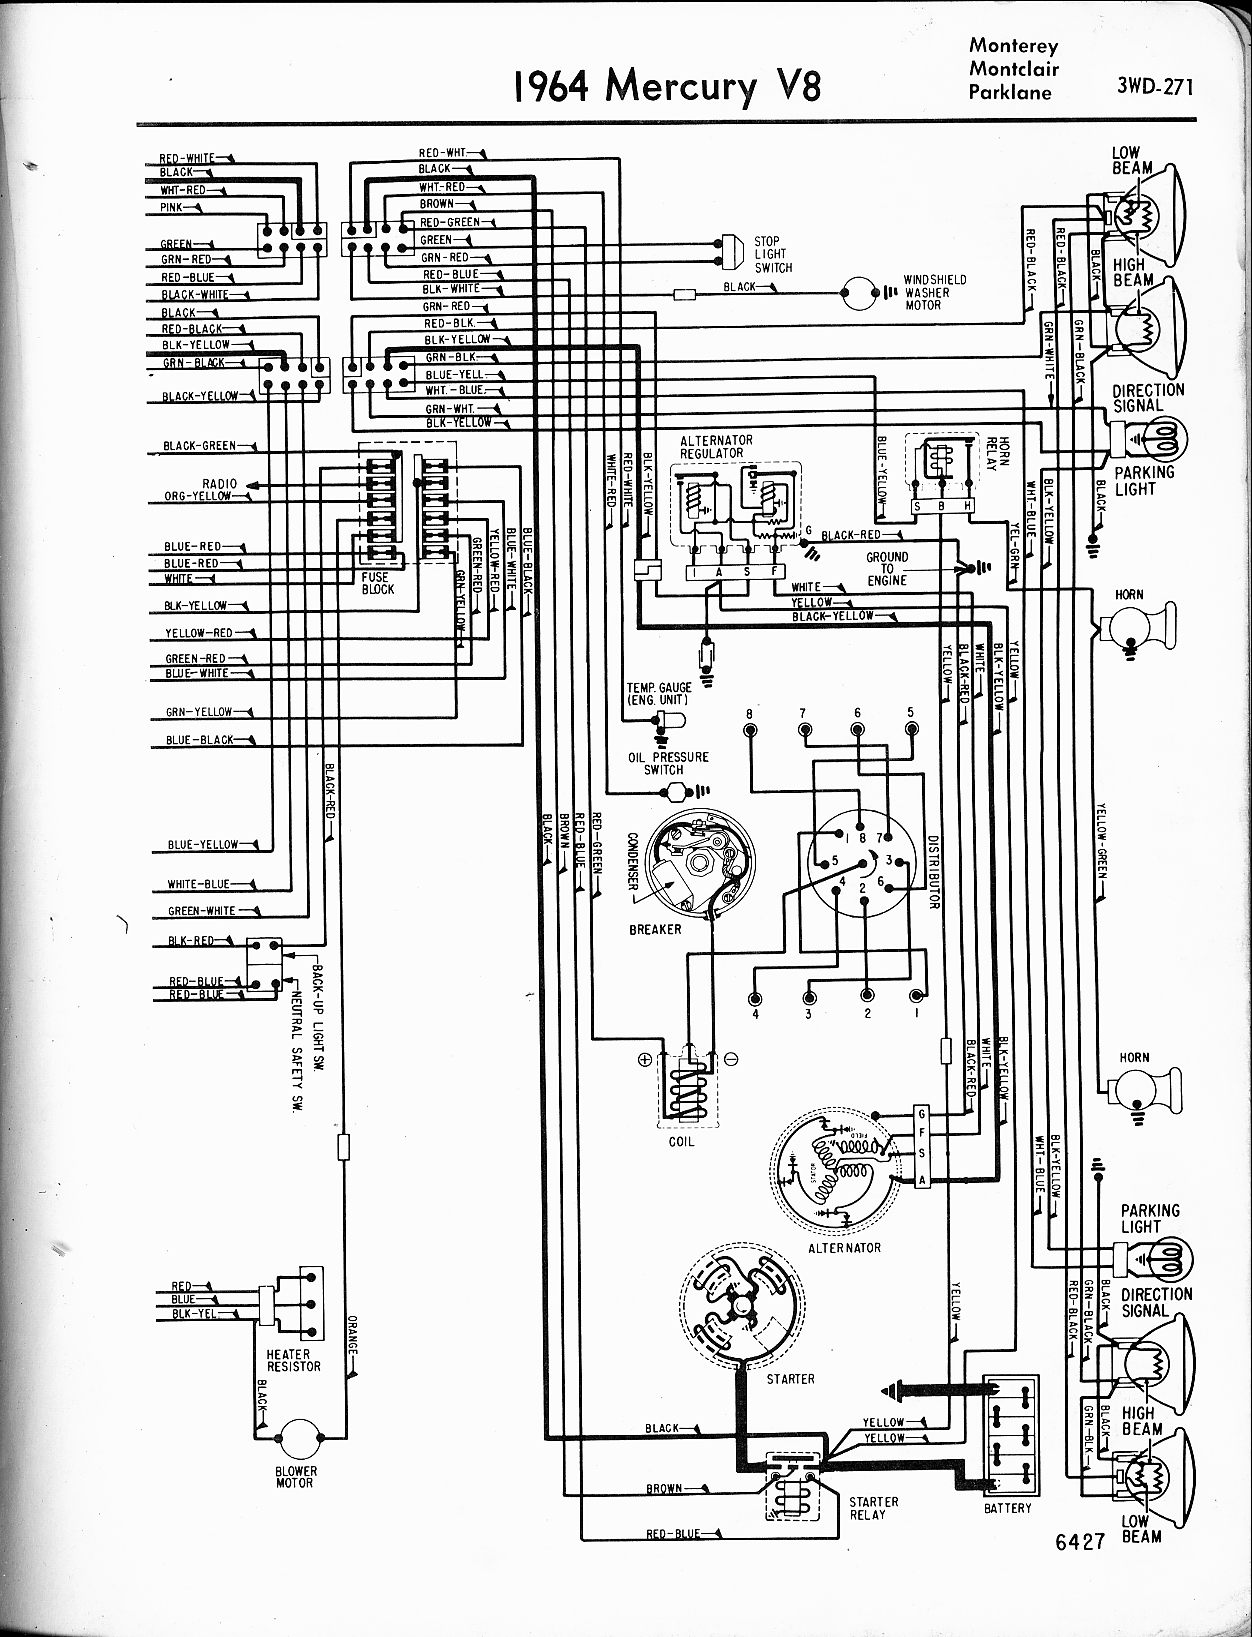 MWire5765 271 mercury wiring diagrams the old car manual project 1955 ford wiring diagram at alyssarenee.co